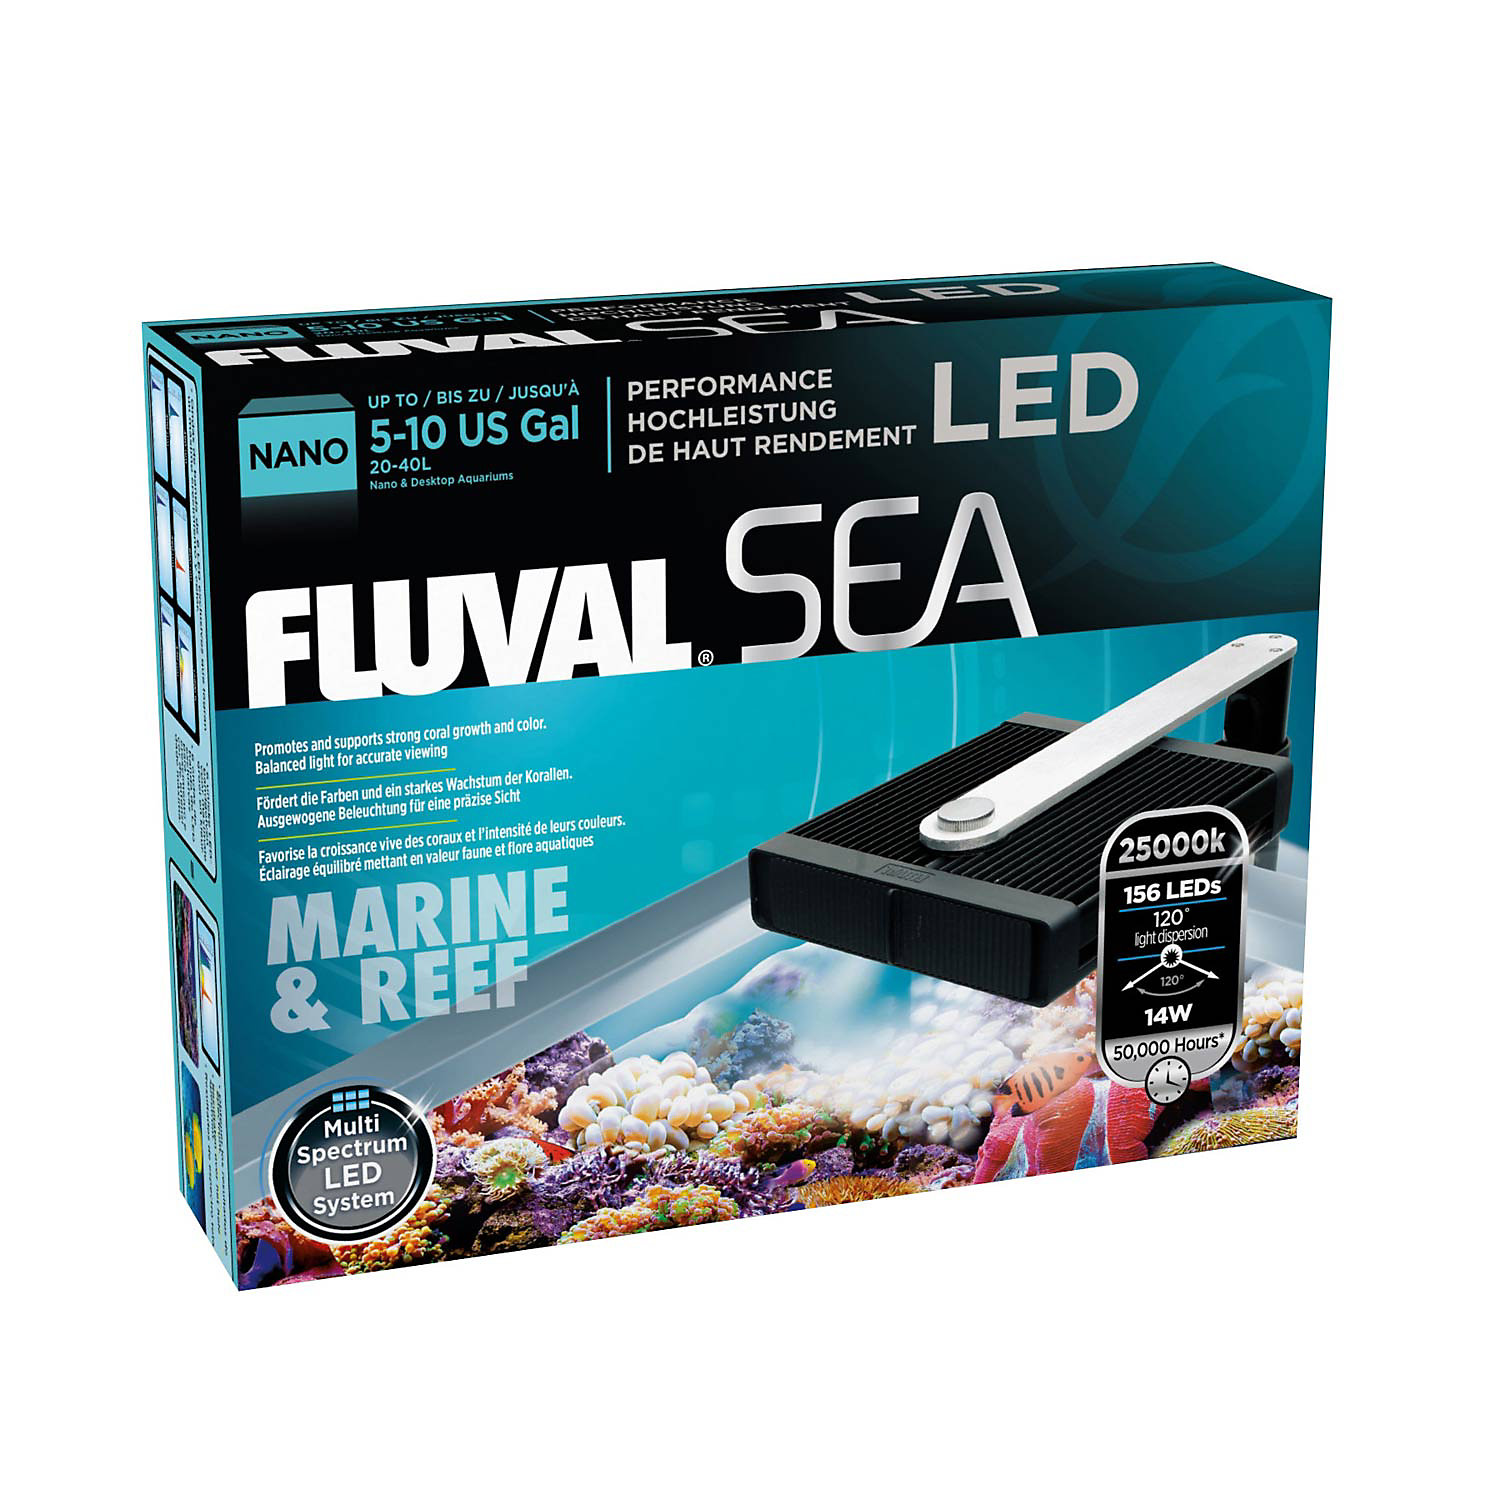 Fluval Sea Marine Reef Led Nano Aquarium Lamp 6 L X 5.5 W Black